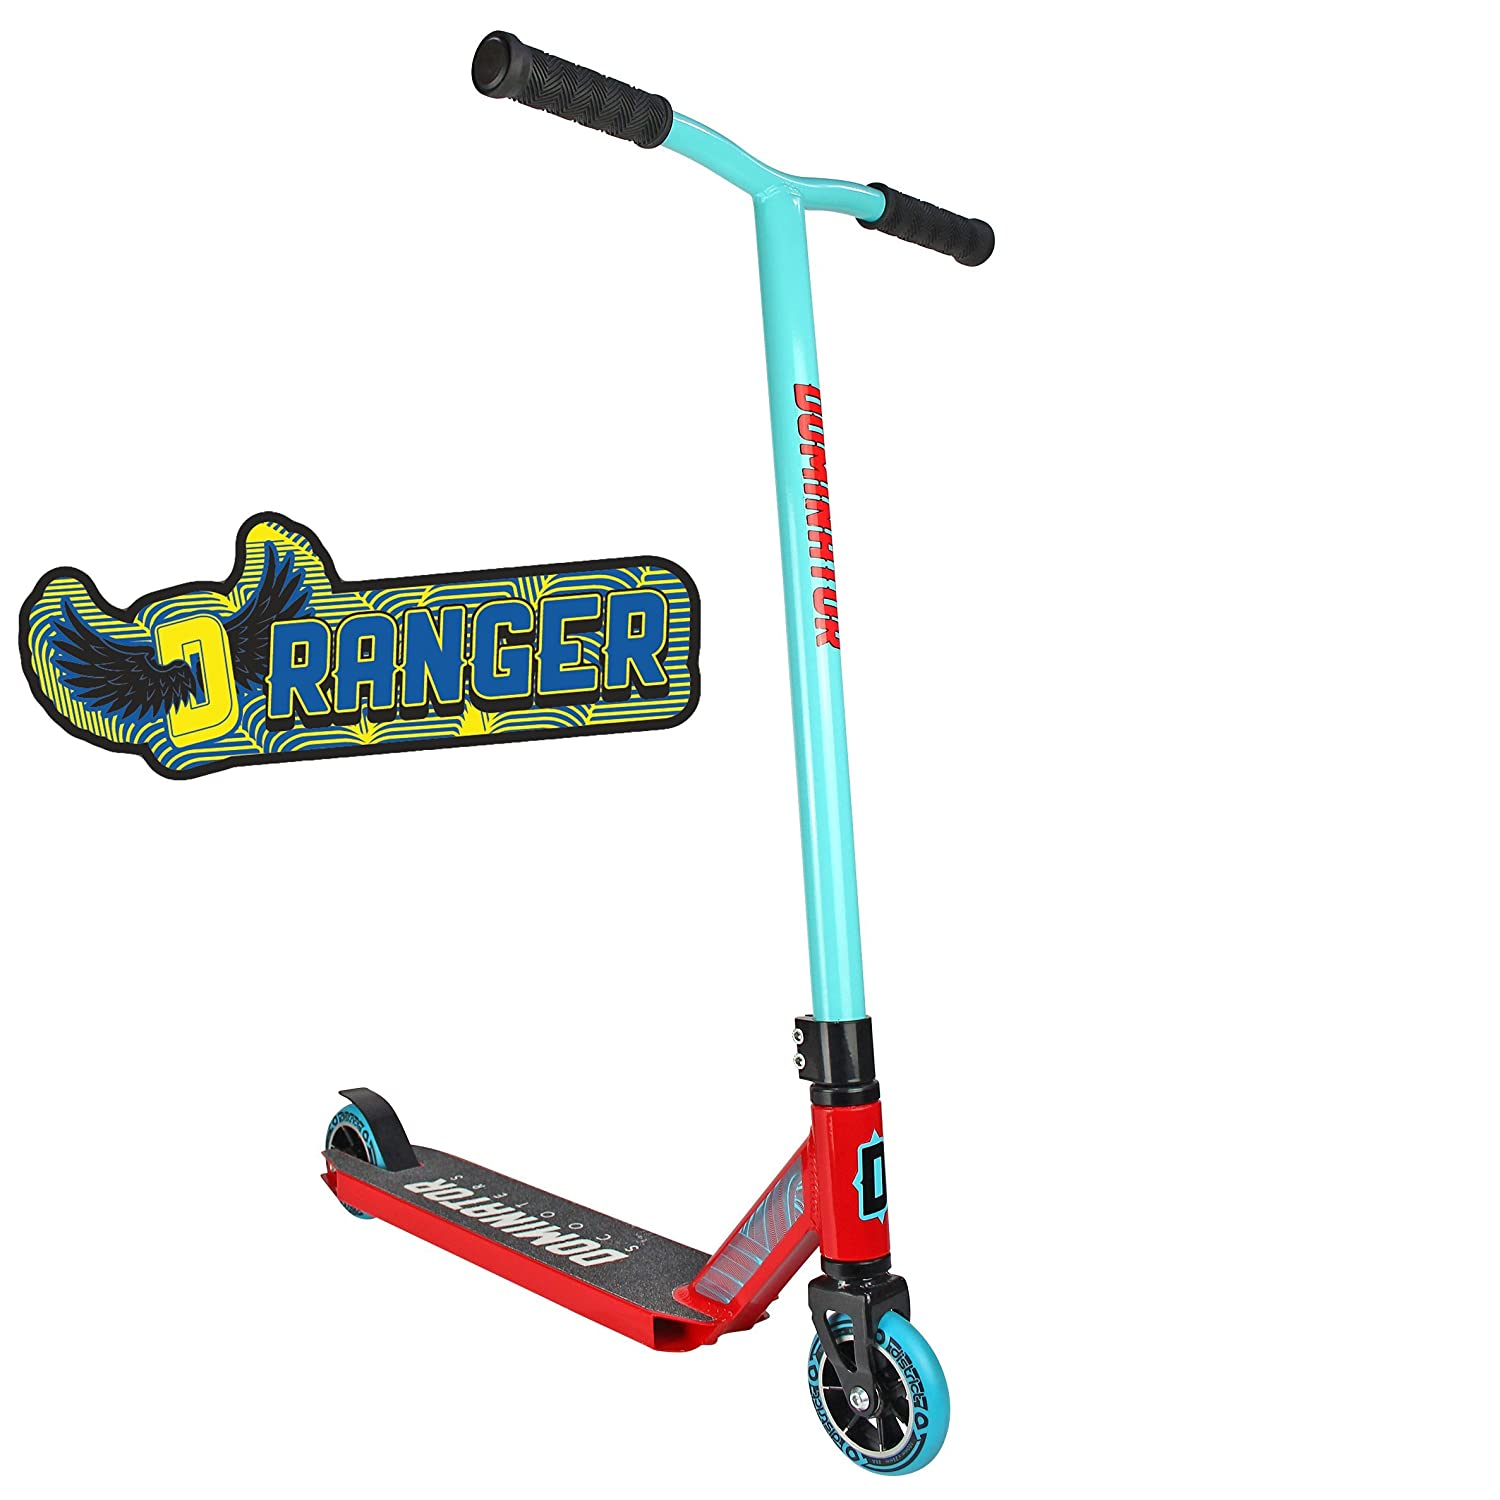 Dominator Ranger Pro Scooter - Stunt Scooter - Trick Scooter (Turquoise/Red) Dominator Scooters